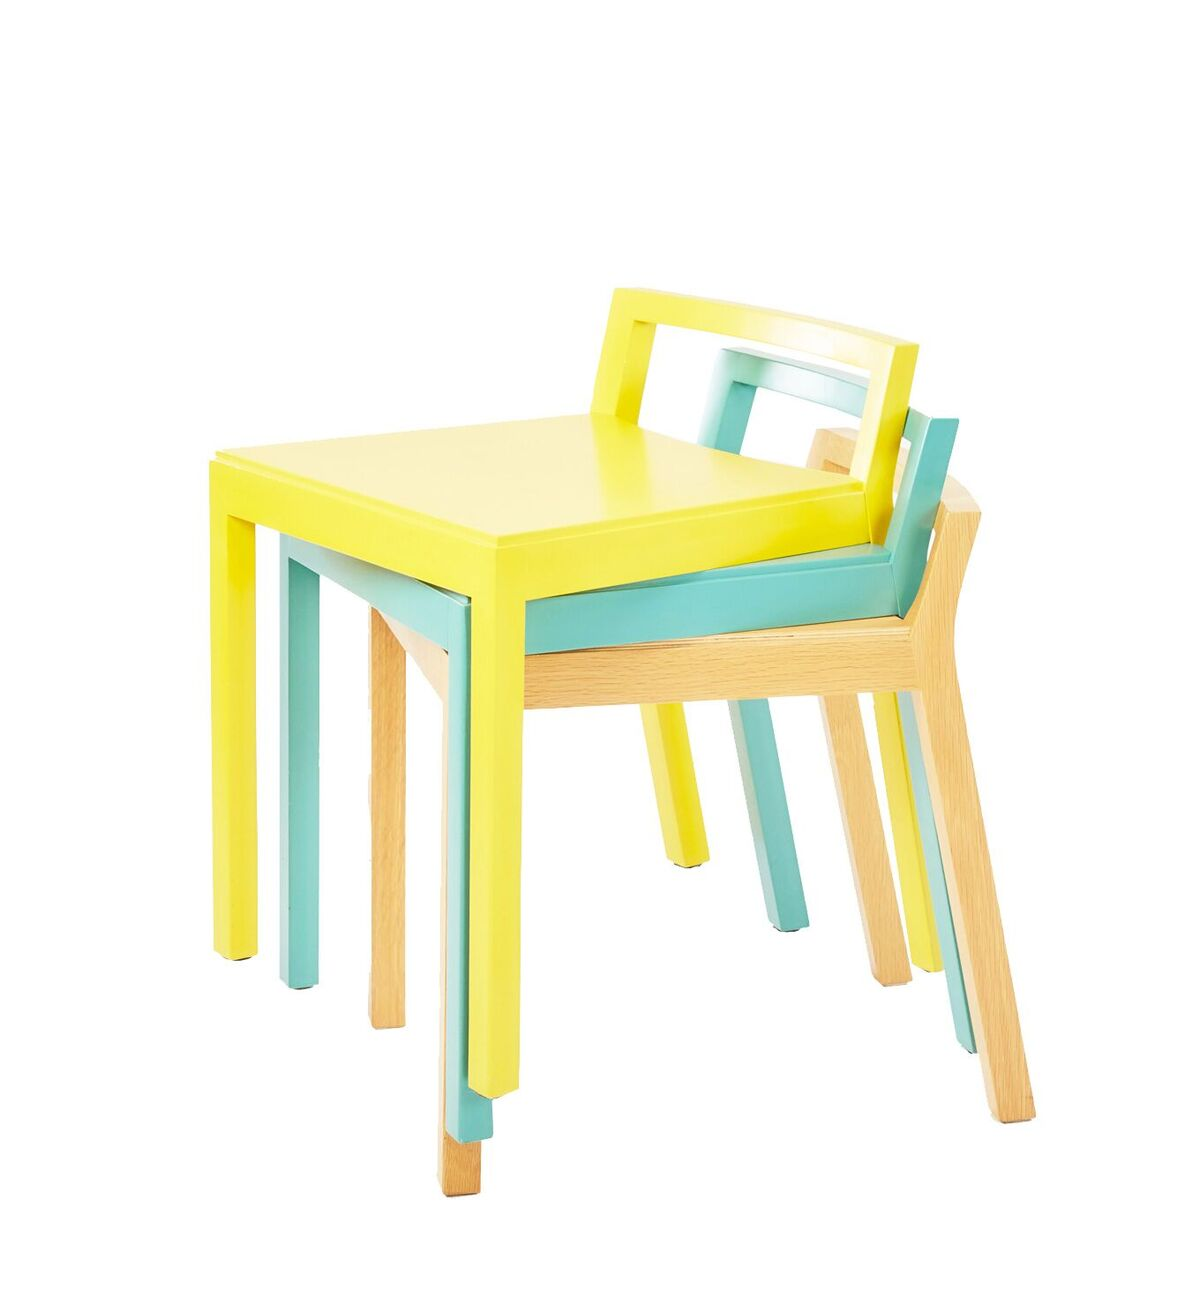 KOTI chair